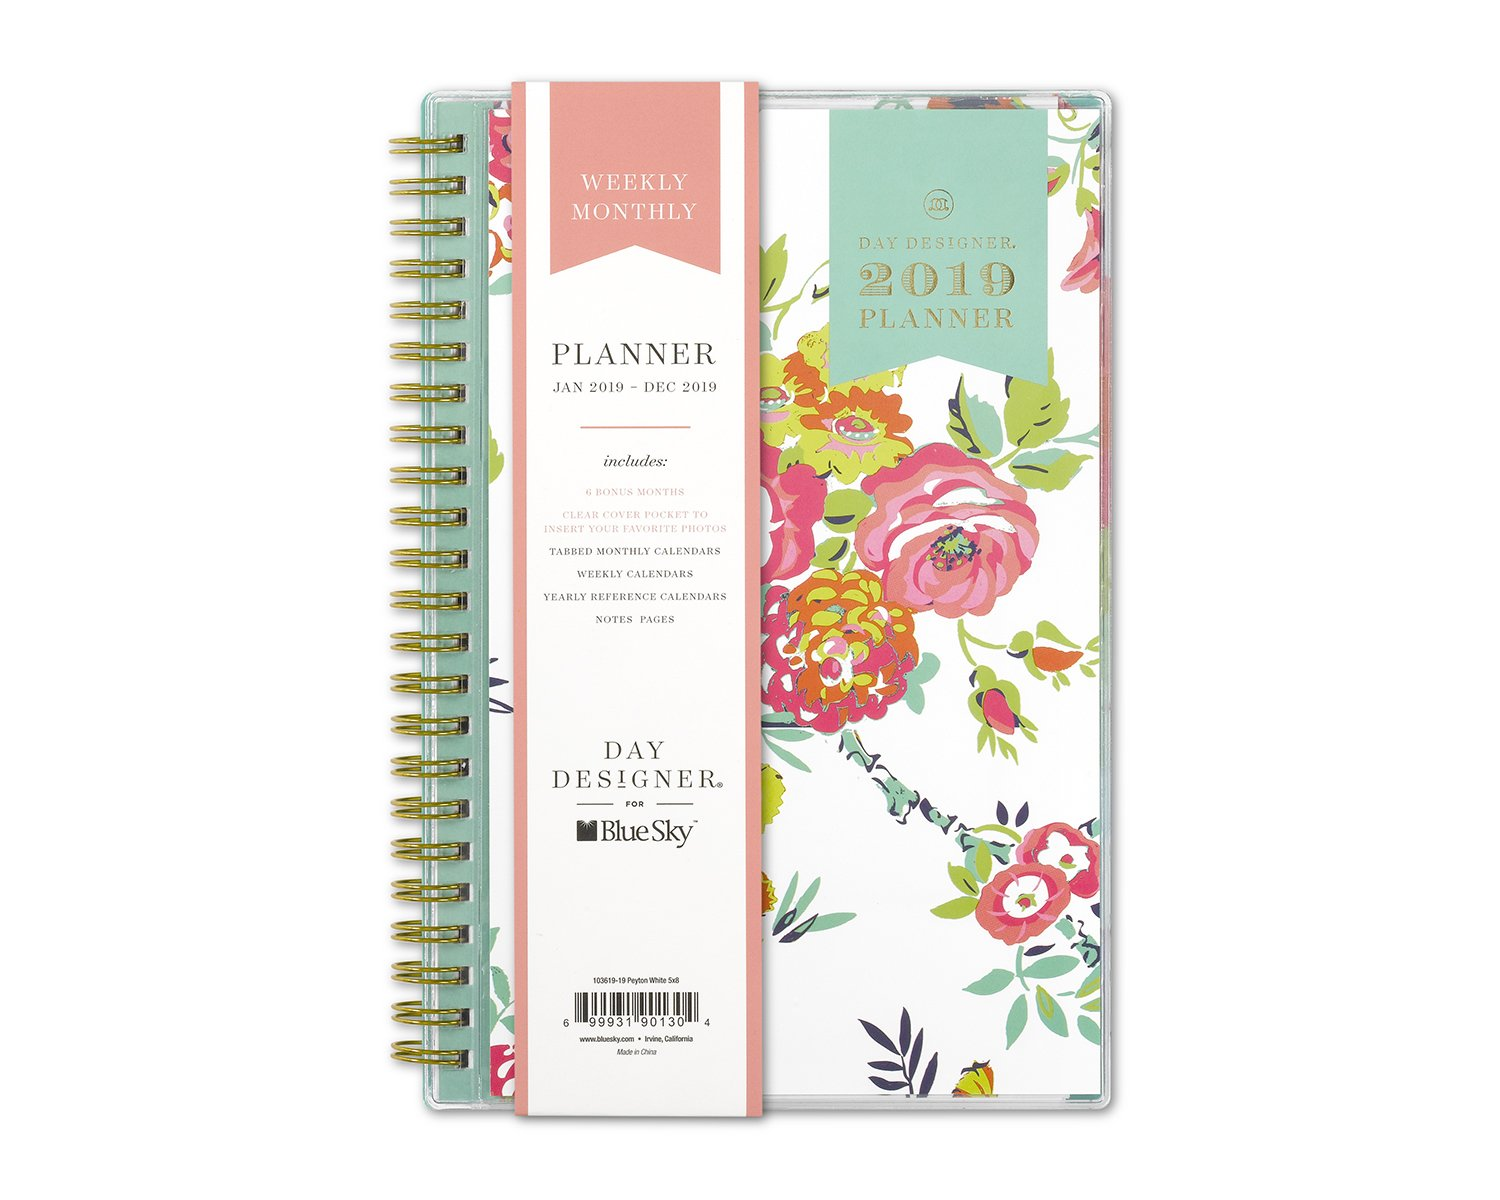 """Day Designer for Blue Sky 2019 Weekly & Monthly Planner, Flexible Cover, Twin-Wire Binding, 5"""" x 8"""", Peyton White"""